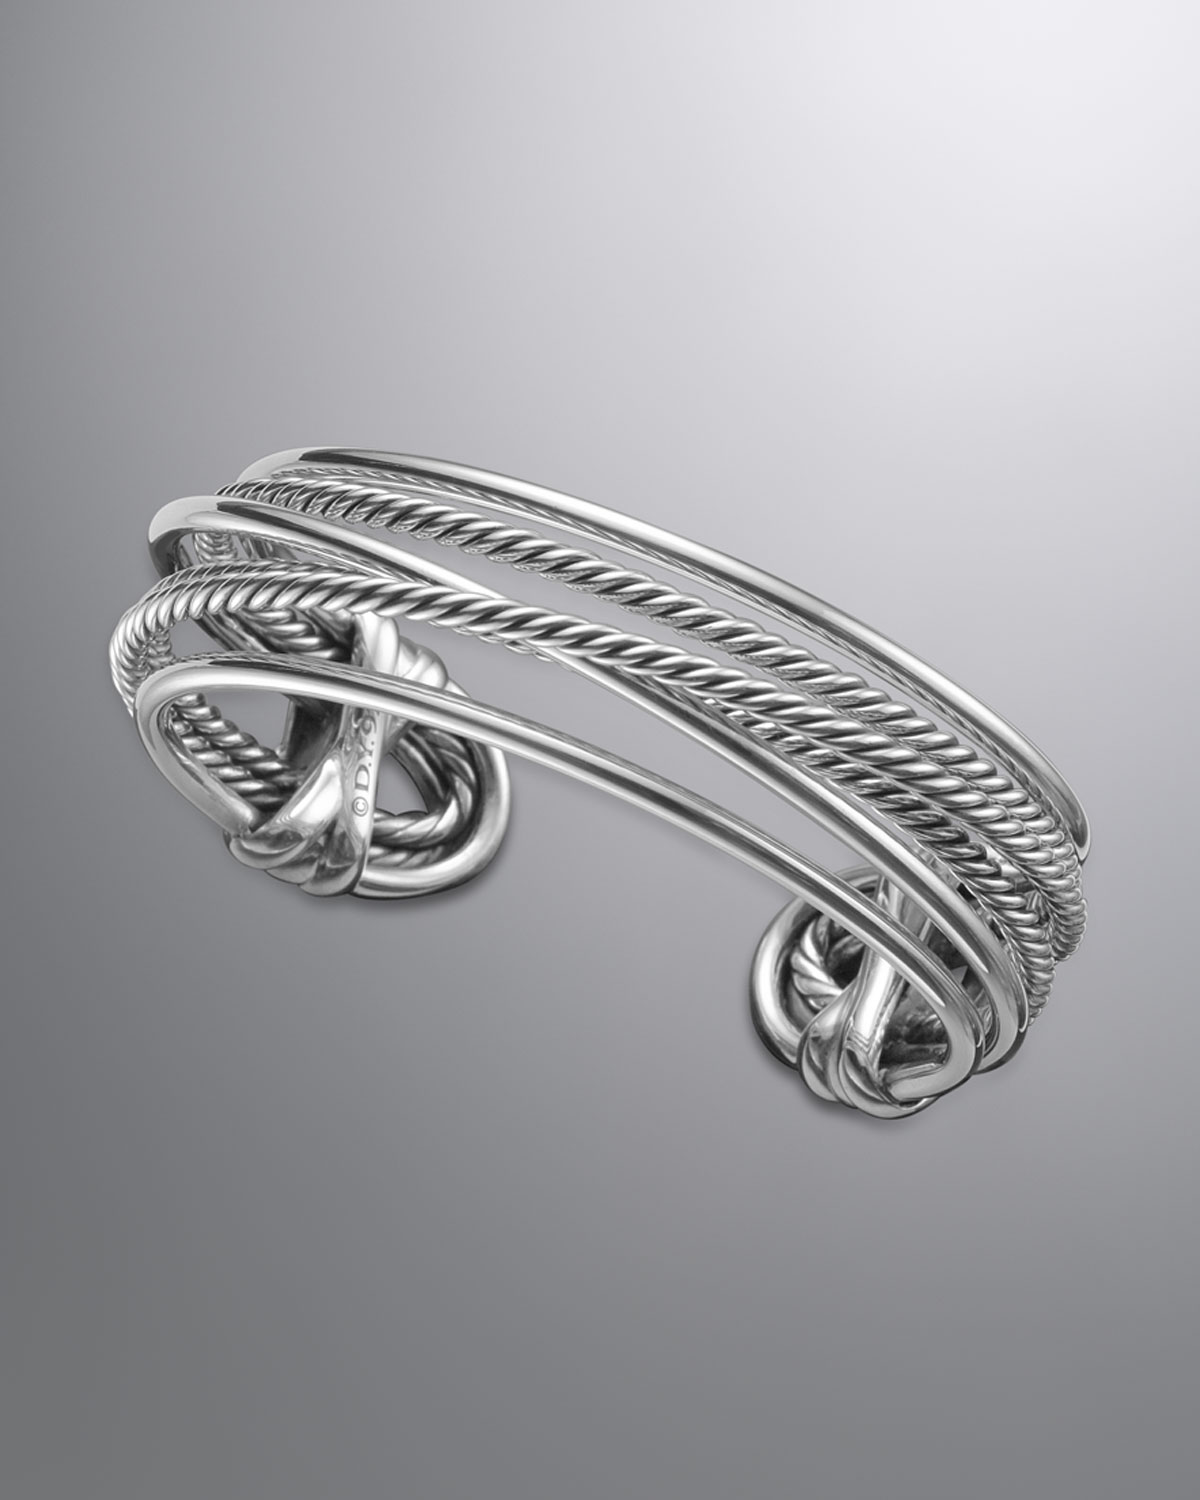 David yurman crossover bracelet sterling silver in silver for David yurman like bracelets